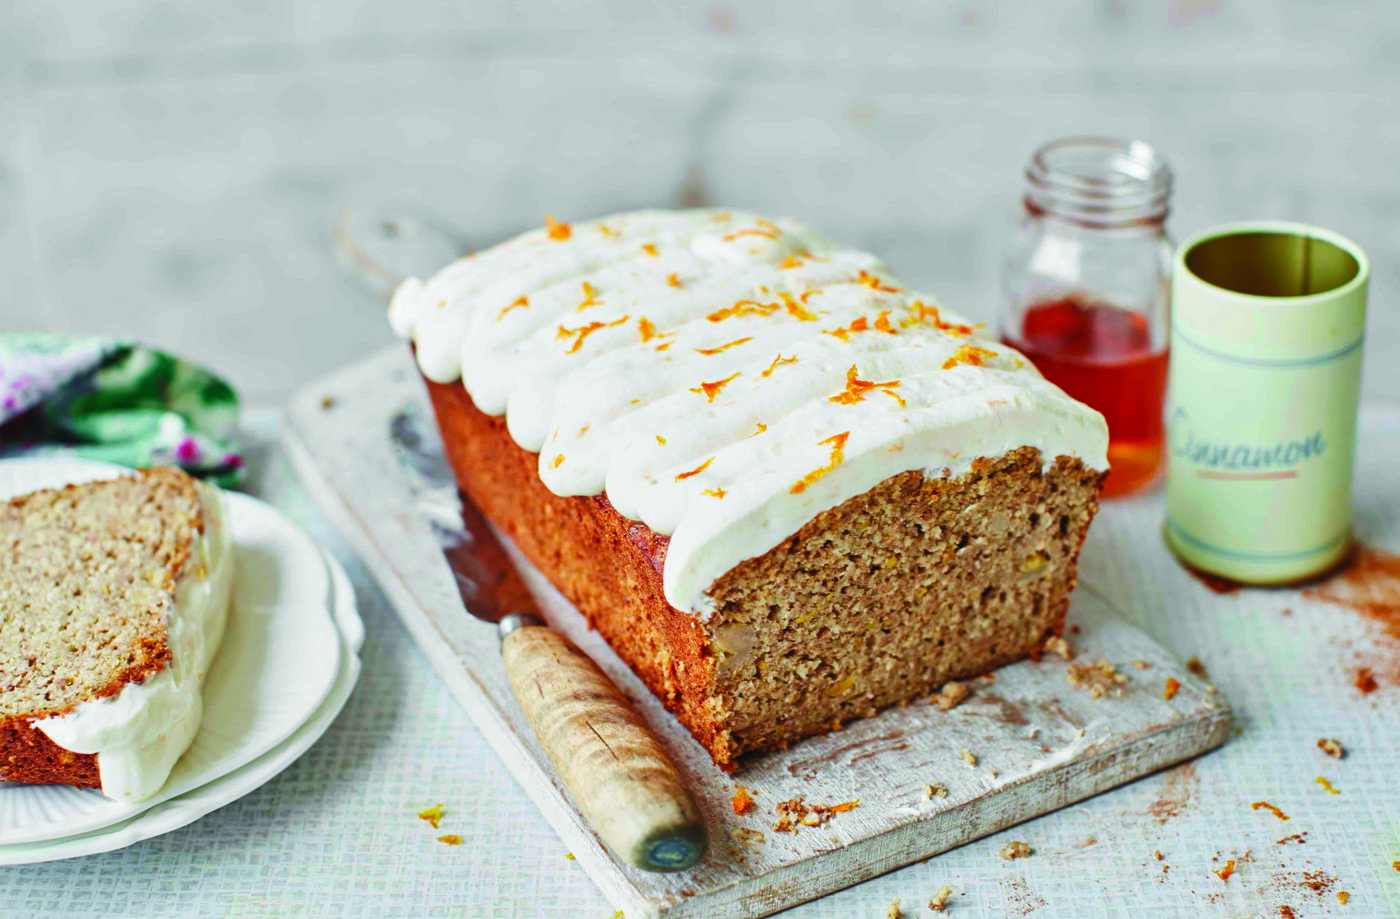 Avocado and banana bread recipe baking ideas tesco real food forumfinder Image collections